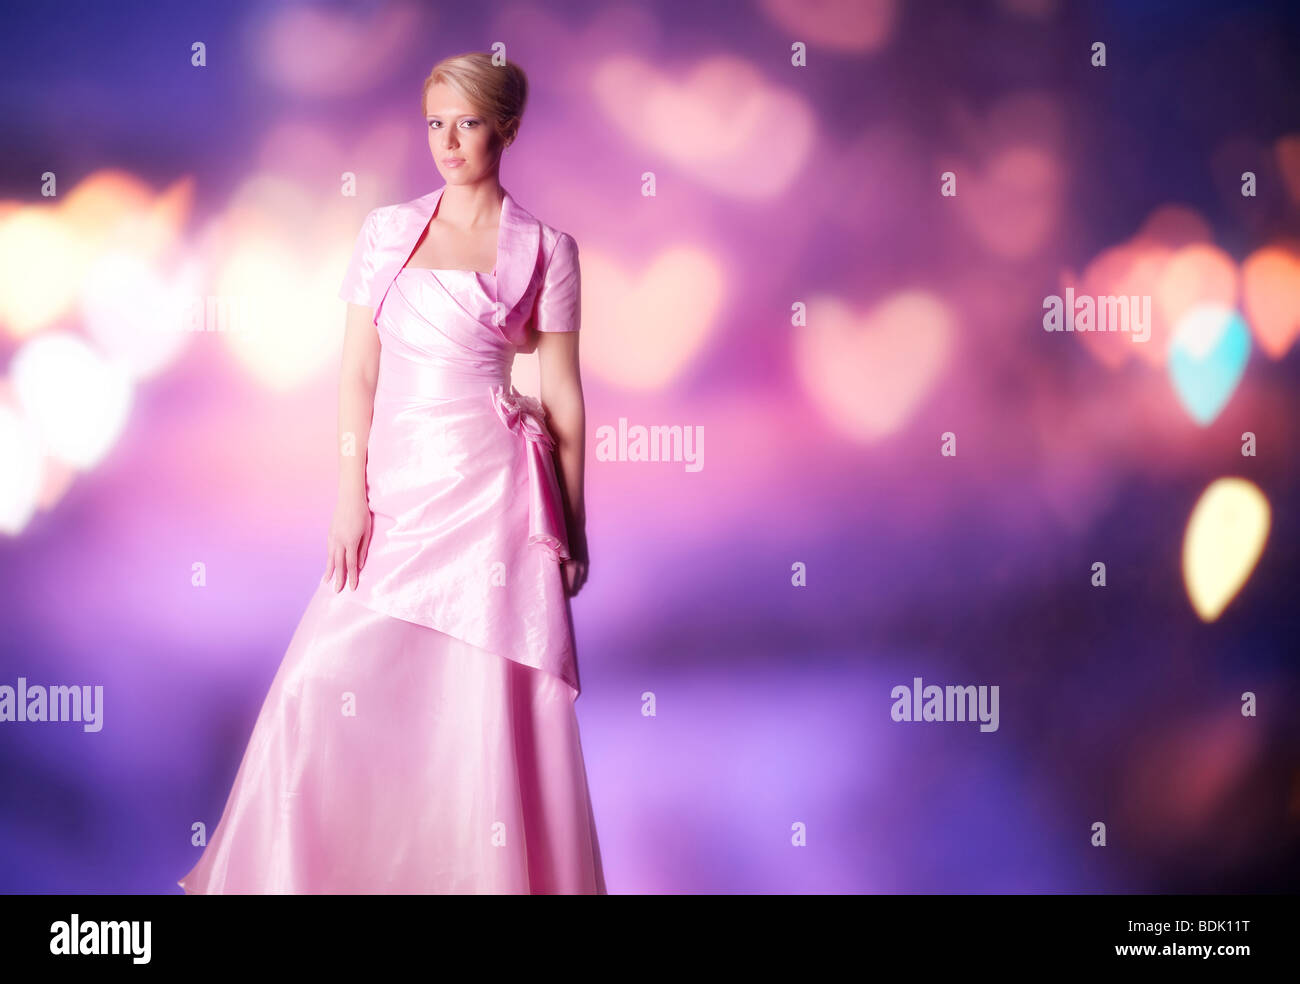 Woman in pink dress on abstract blurry background. - Stock Image